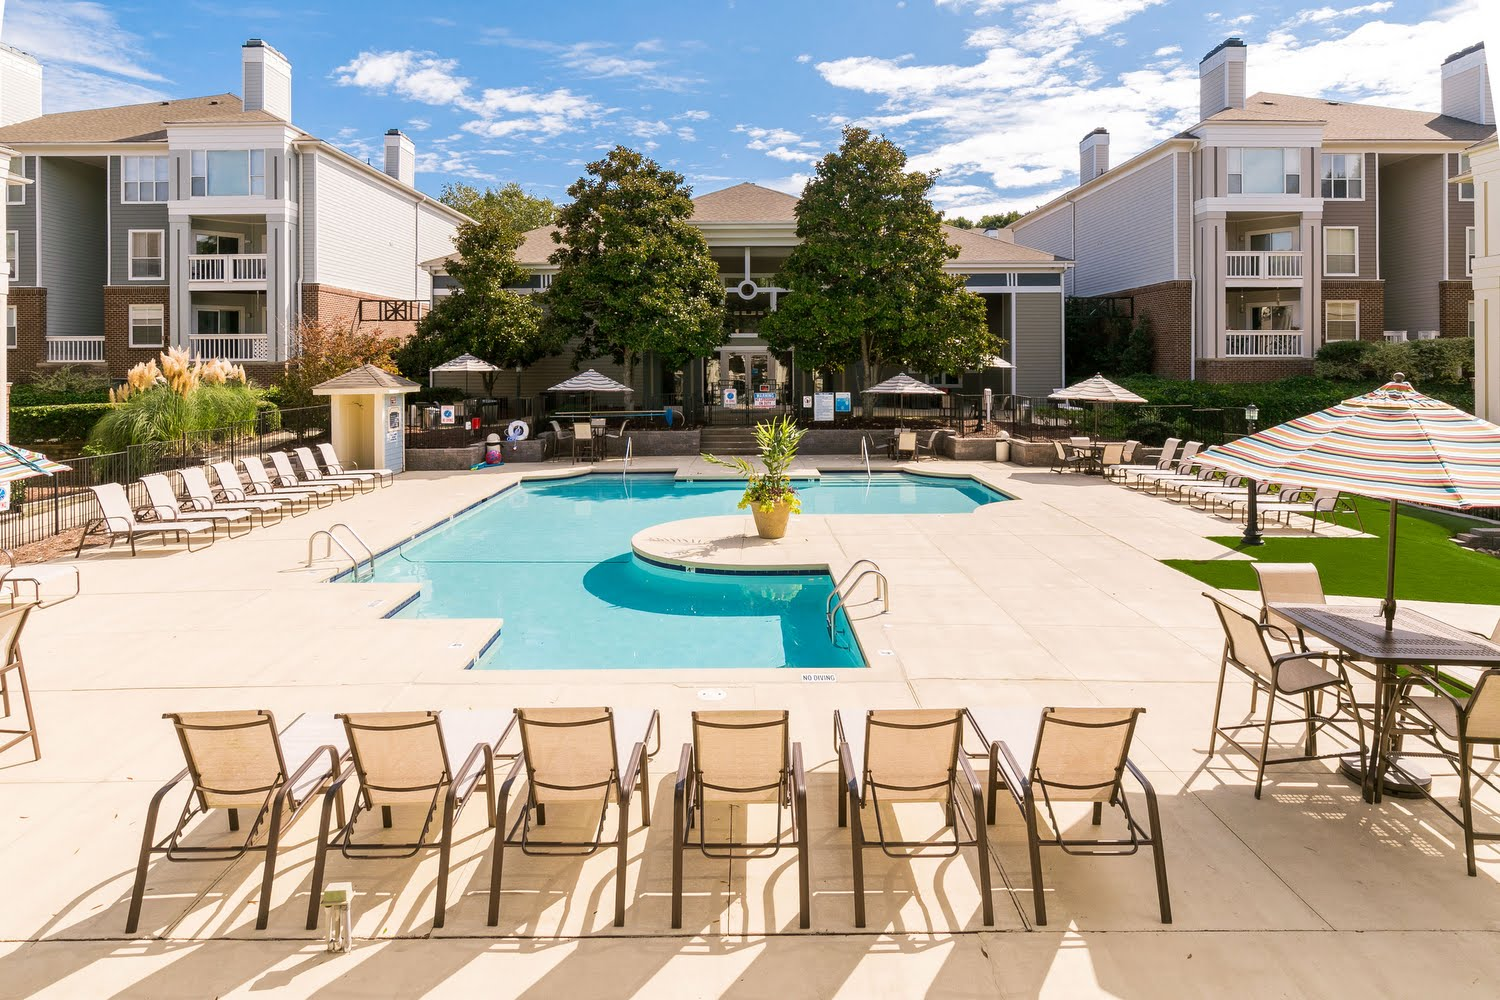 Concord apartments for rent in raleigh north carolina - 3 bedroom apartments in concord nc ...